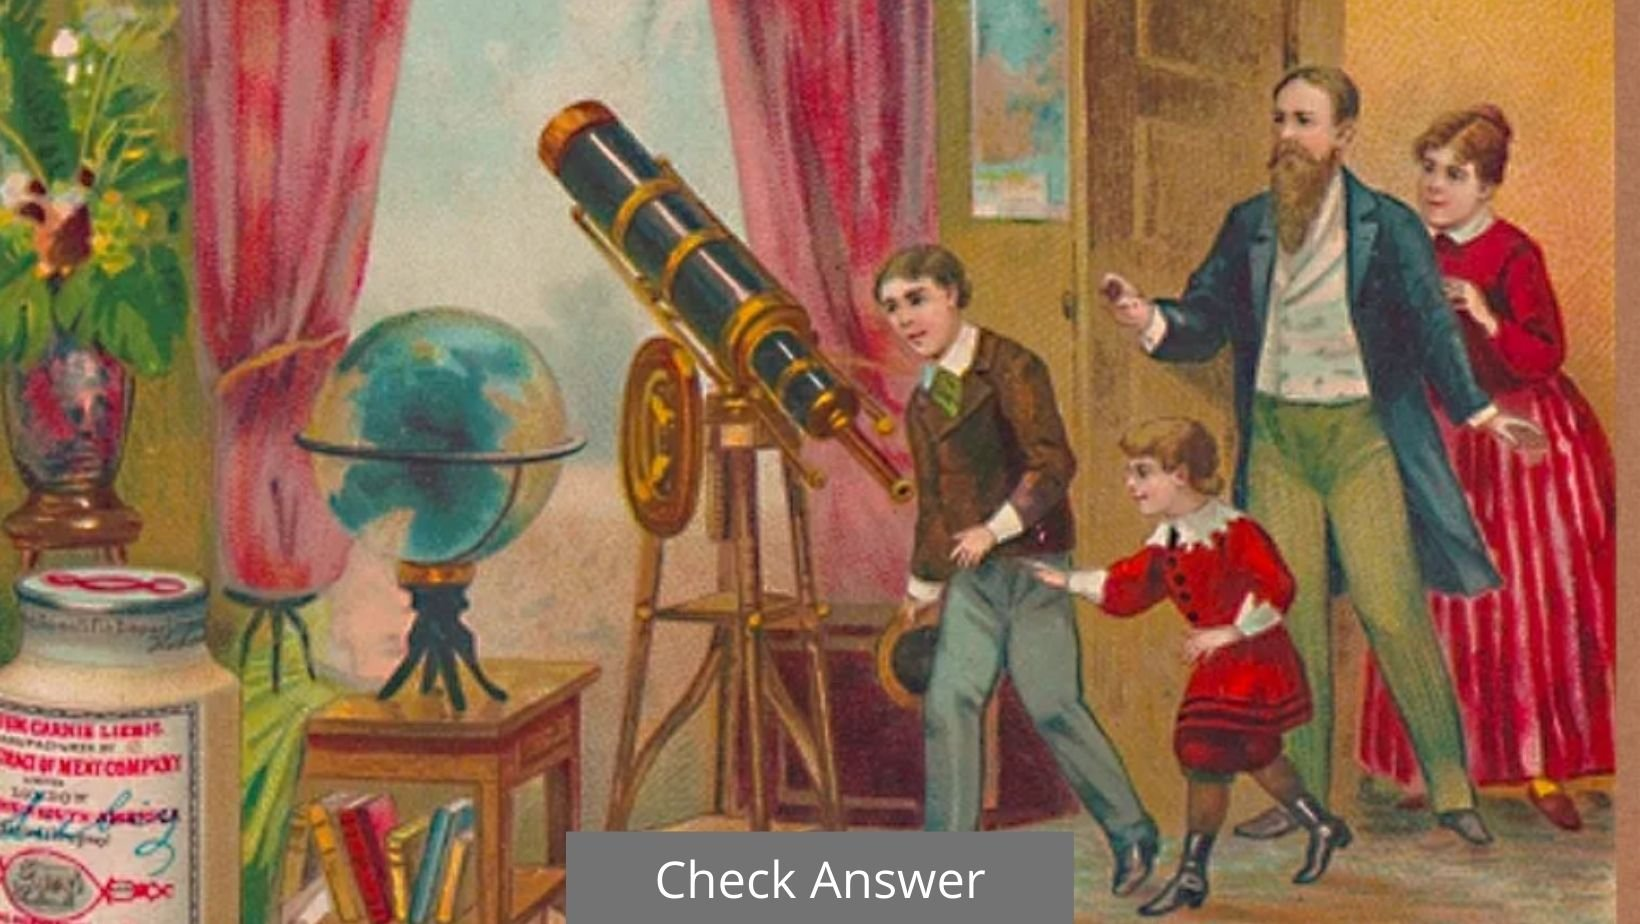 small joys thumbnail 1.jpg?resize=412,232 - There Is An ASTRONOMER Hiding In This Vintage Ad, Can You Spot Him?